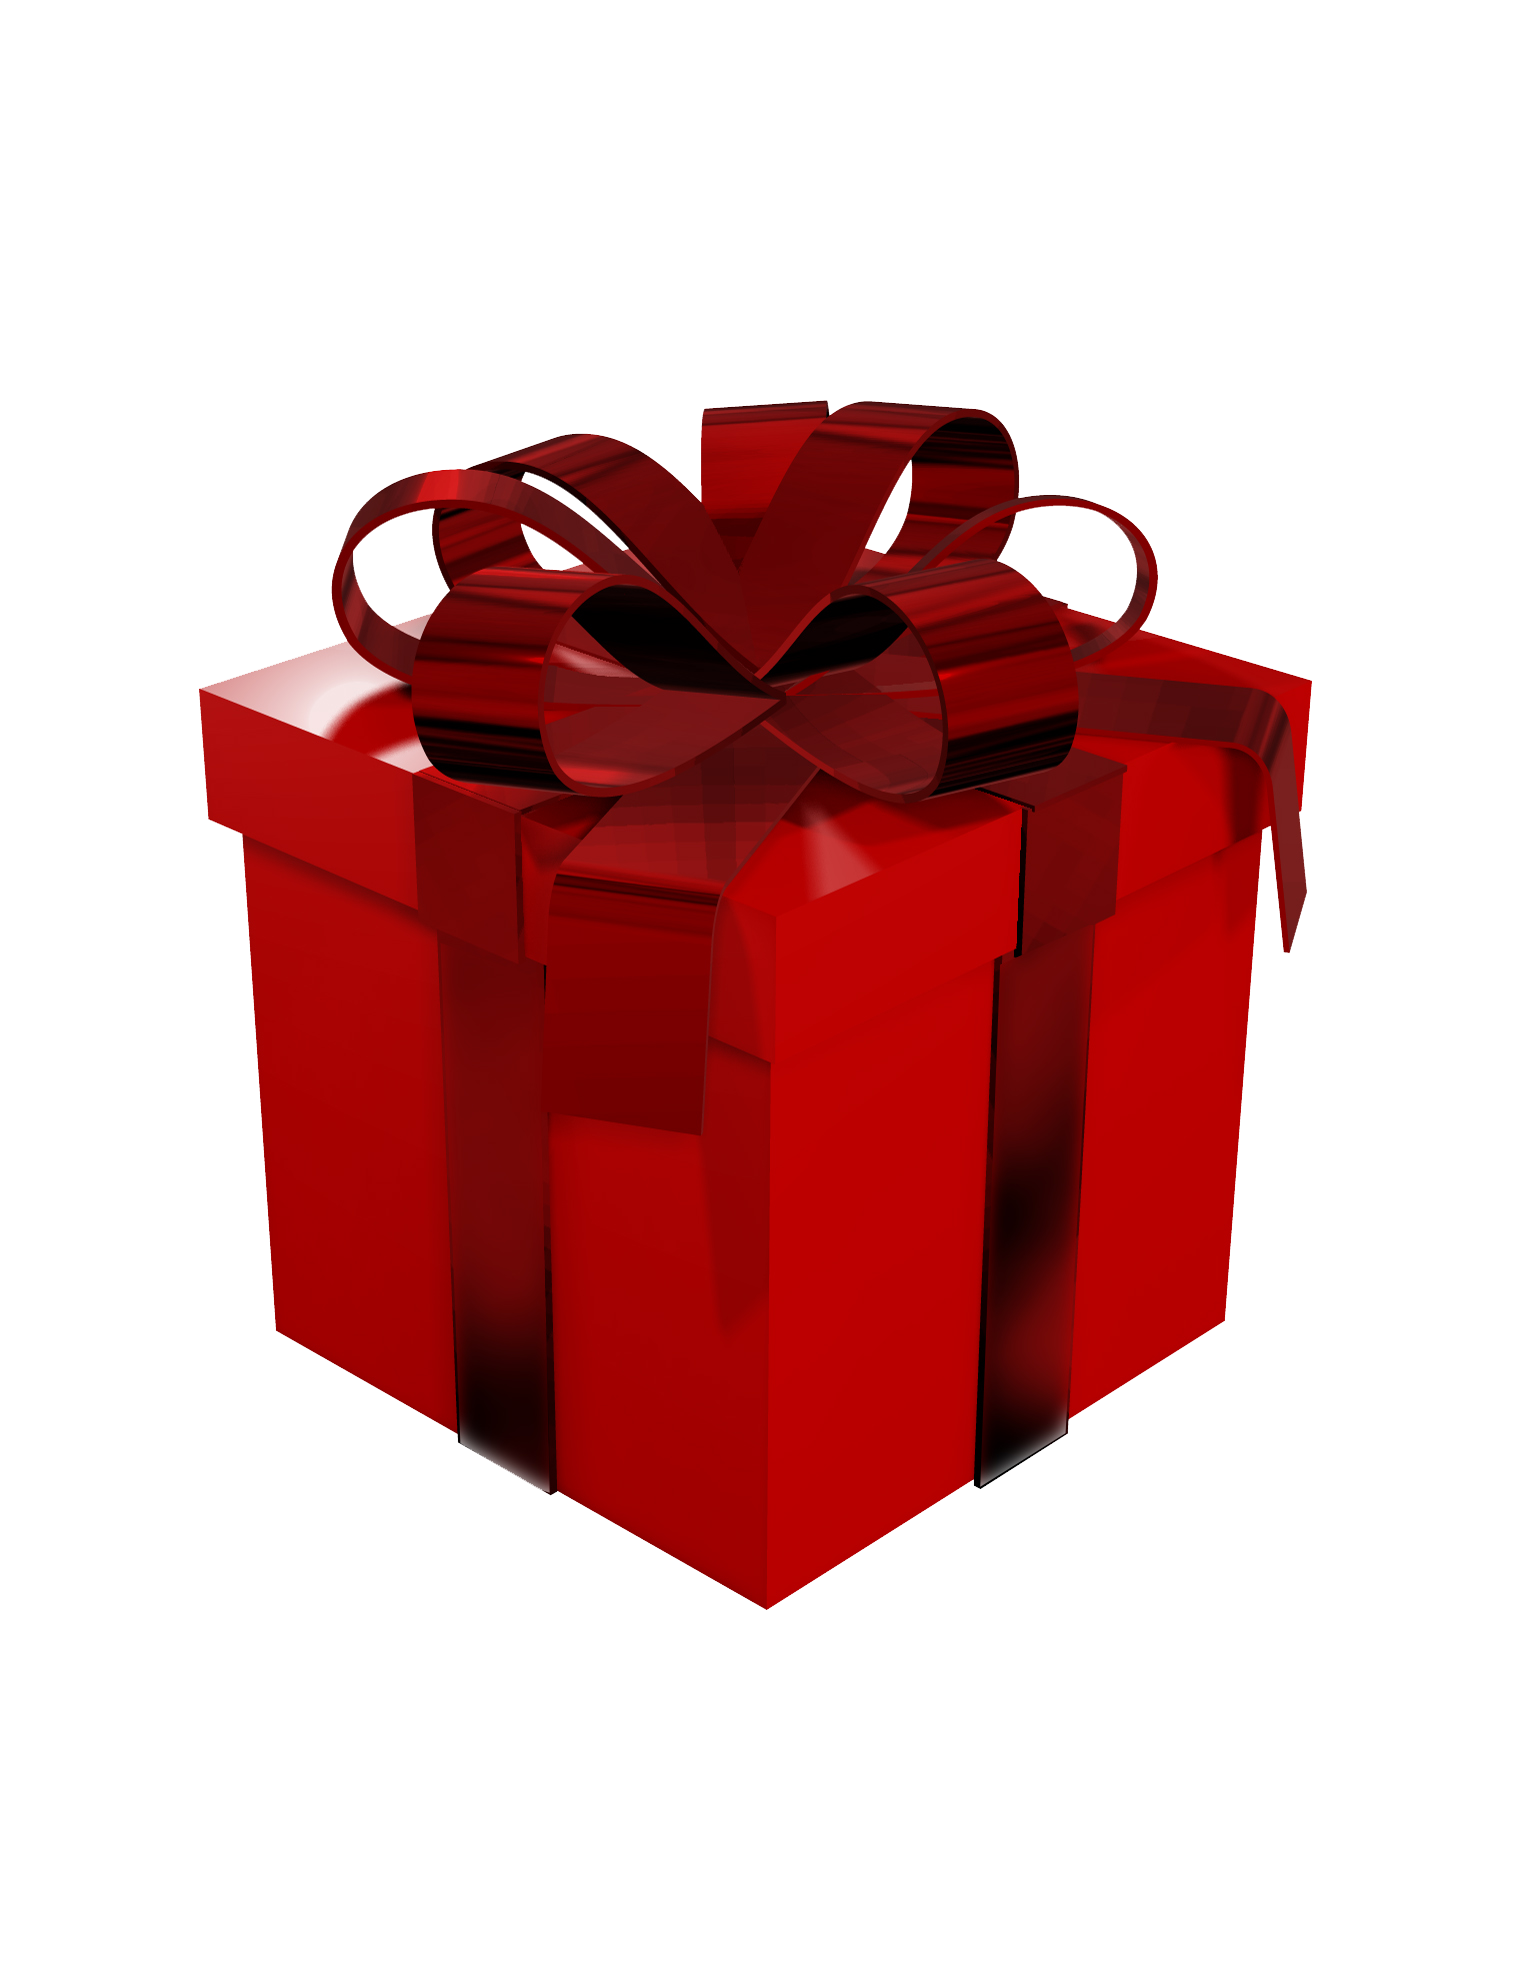 Larger clipart gift box Large Clipart Red Box View